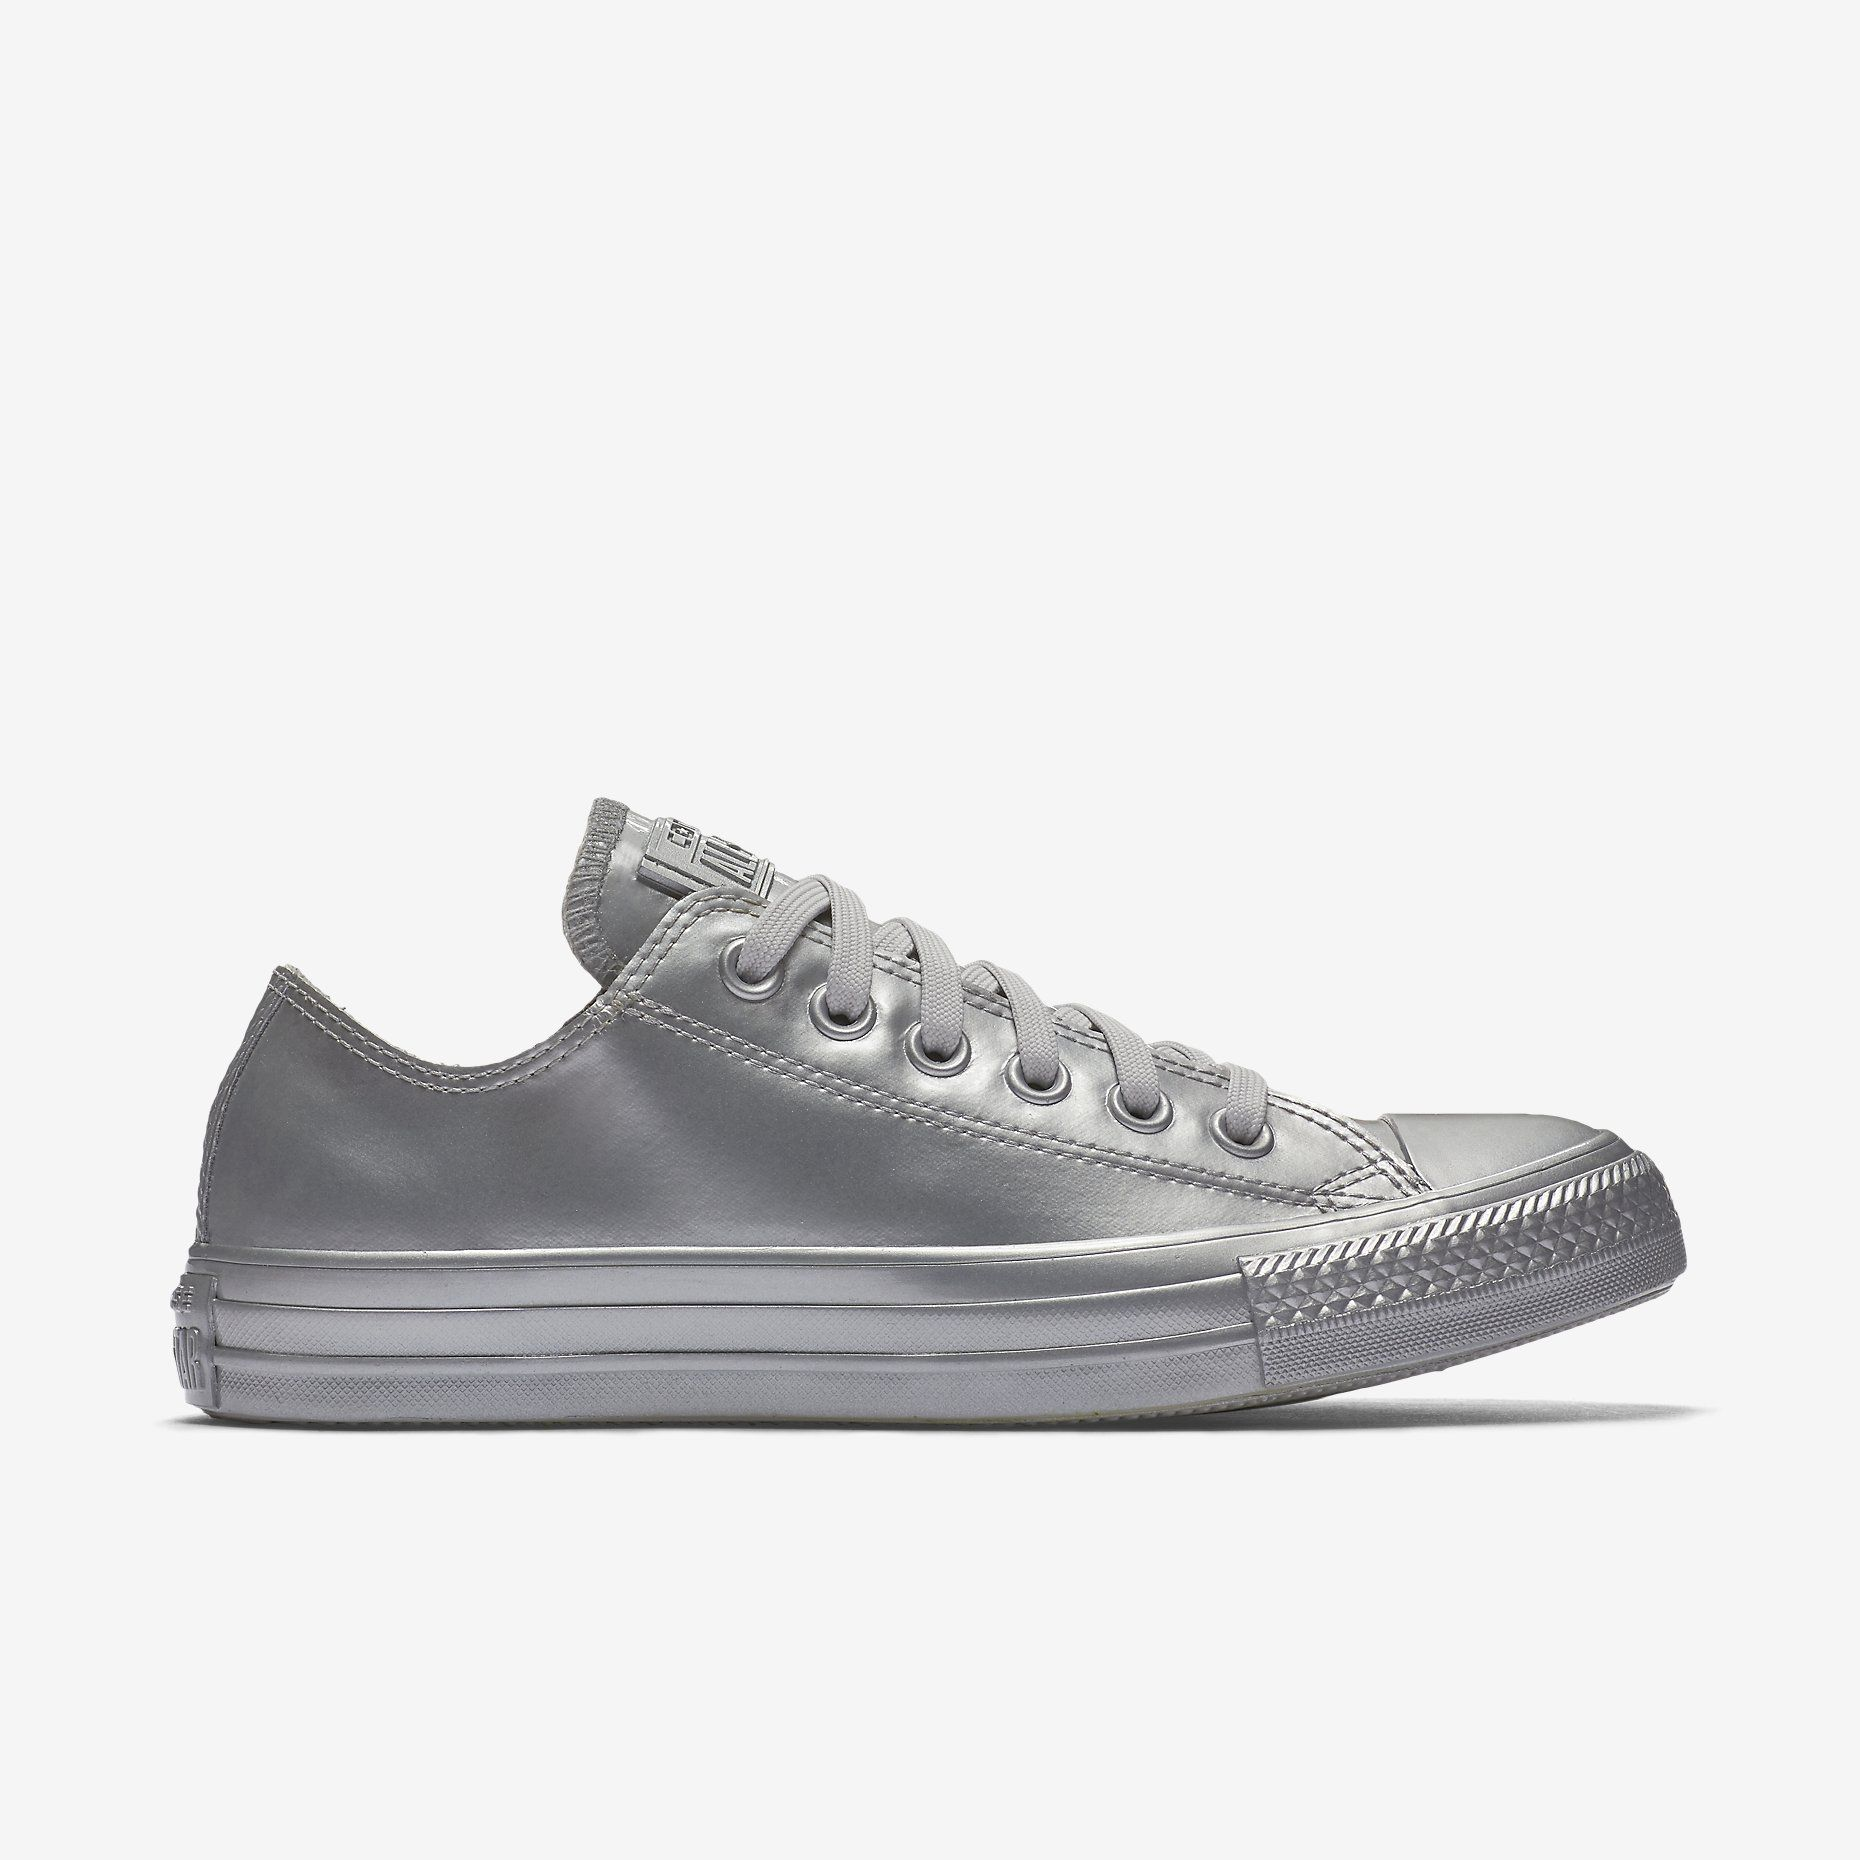 CONVERSE CHUCK TAYLOR ALL STAR METALLIC RUBBER LOW TOP